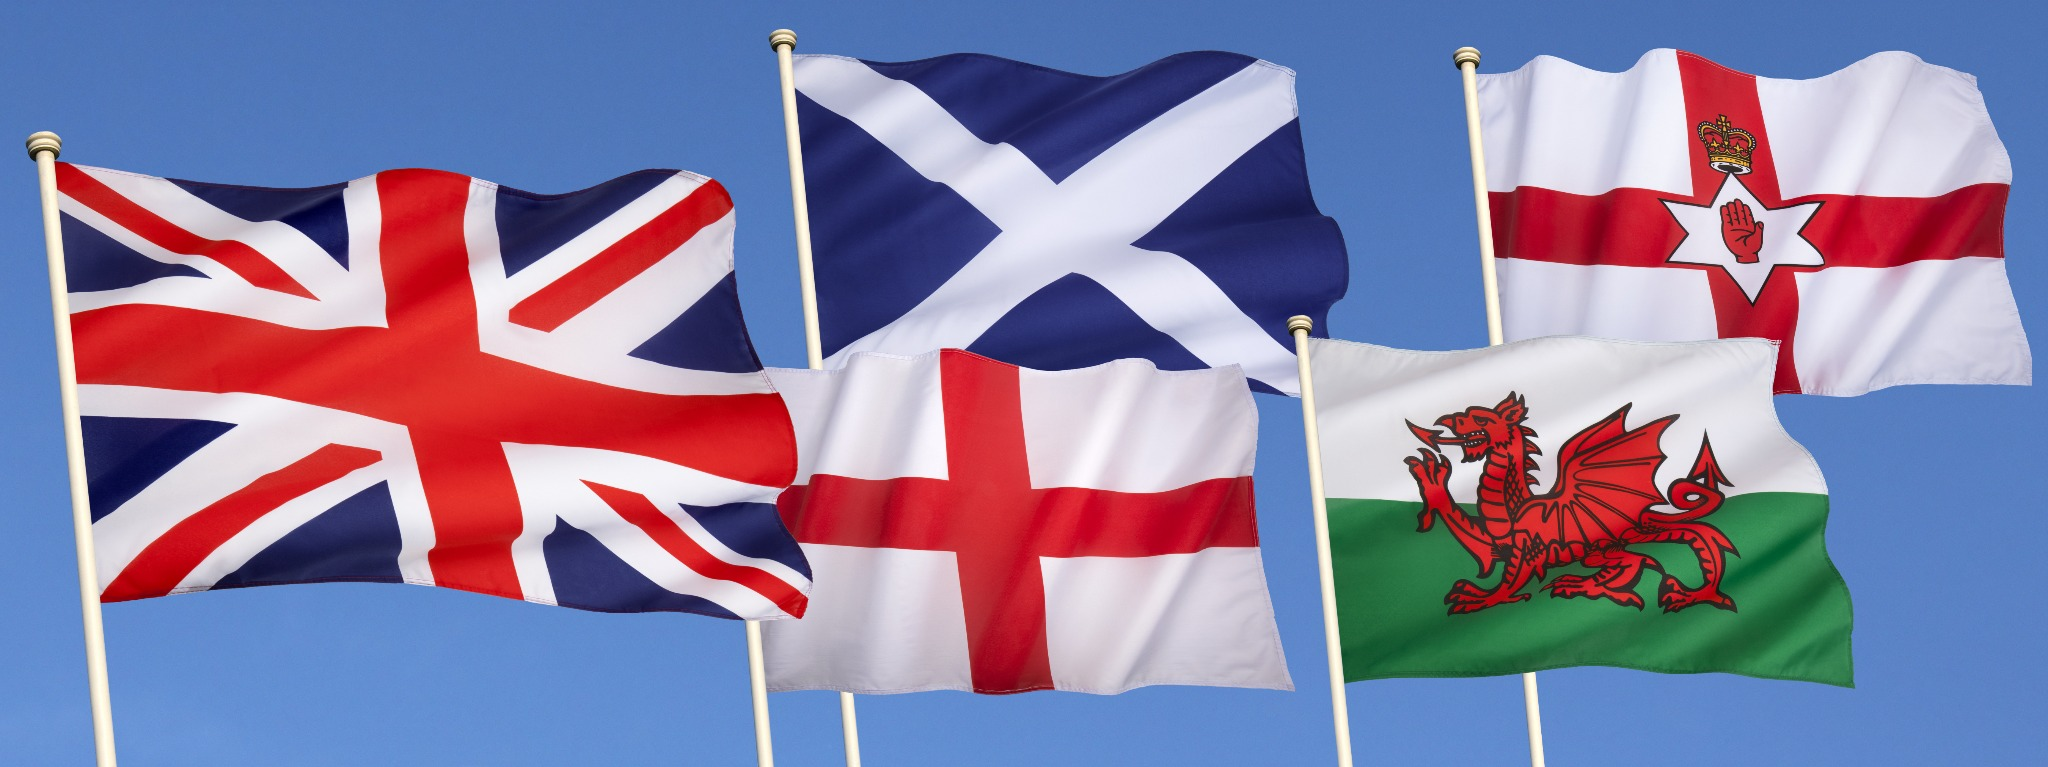 The flags of Great Britaina nd Ireland including the Welsh Drago, St. Andrew's Cross, Ulster Flag, the Union Jack and the flag of Northern Ireland.